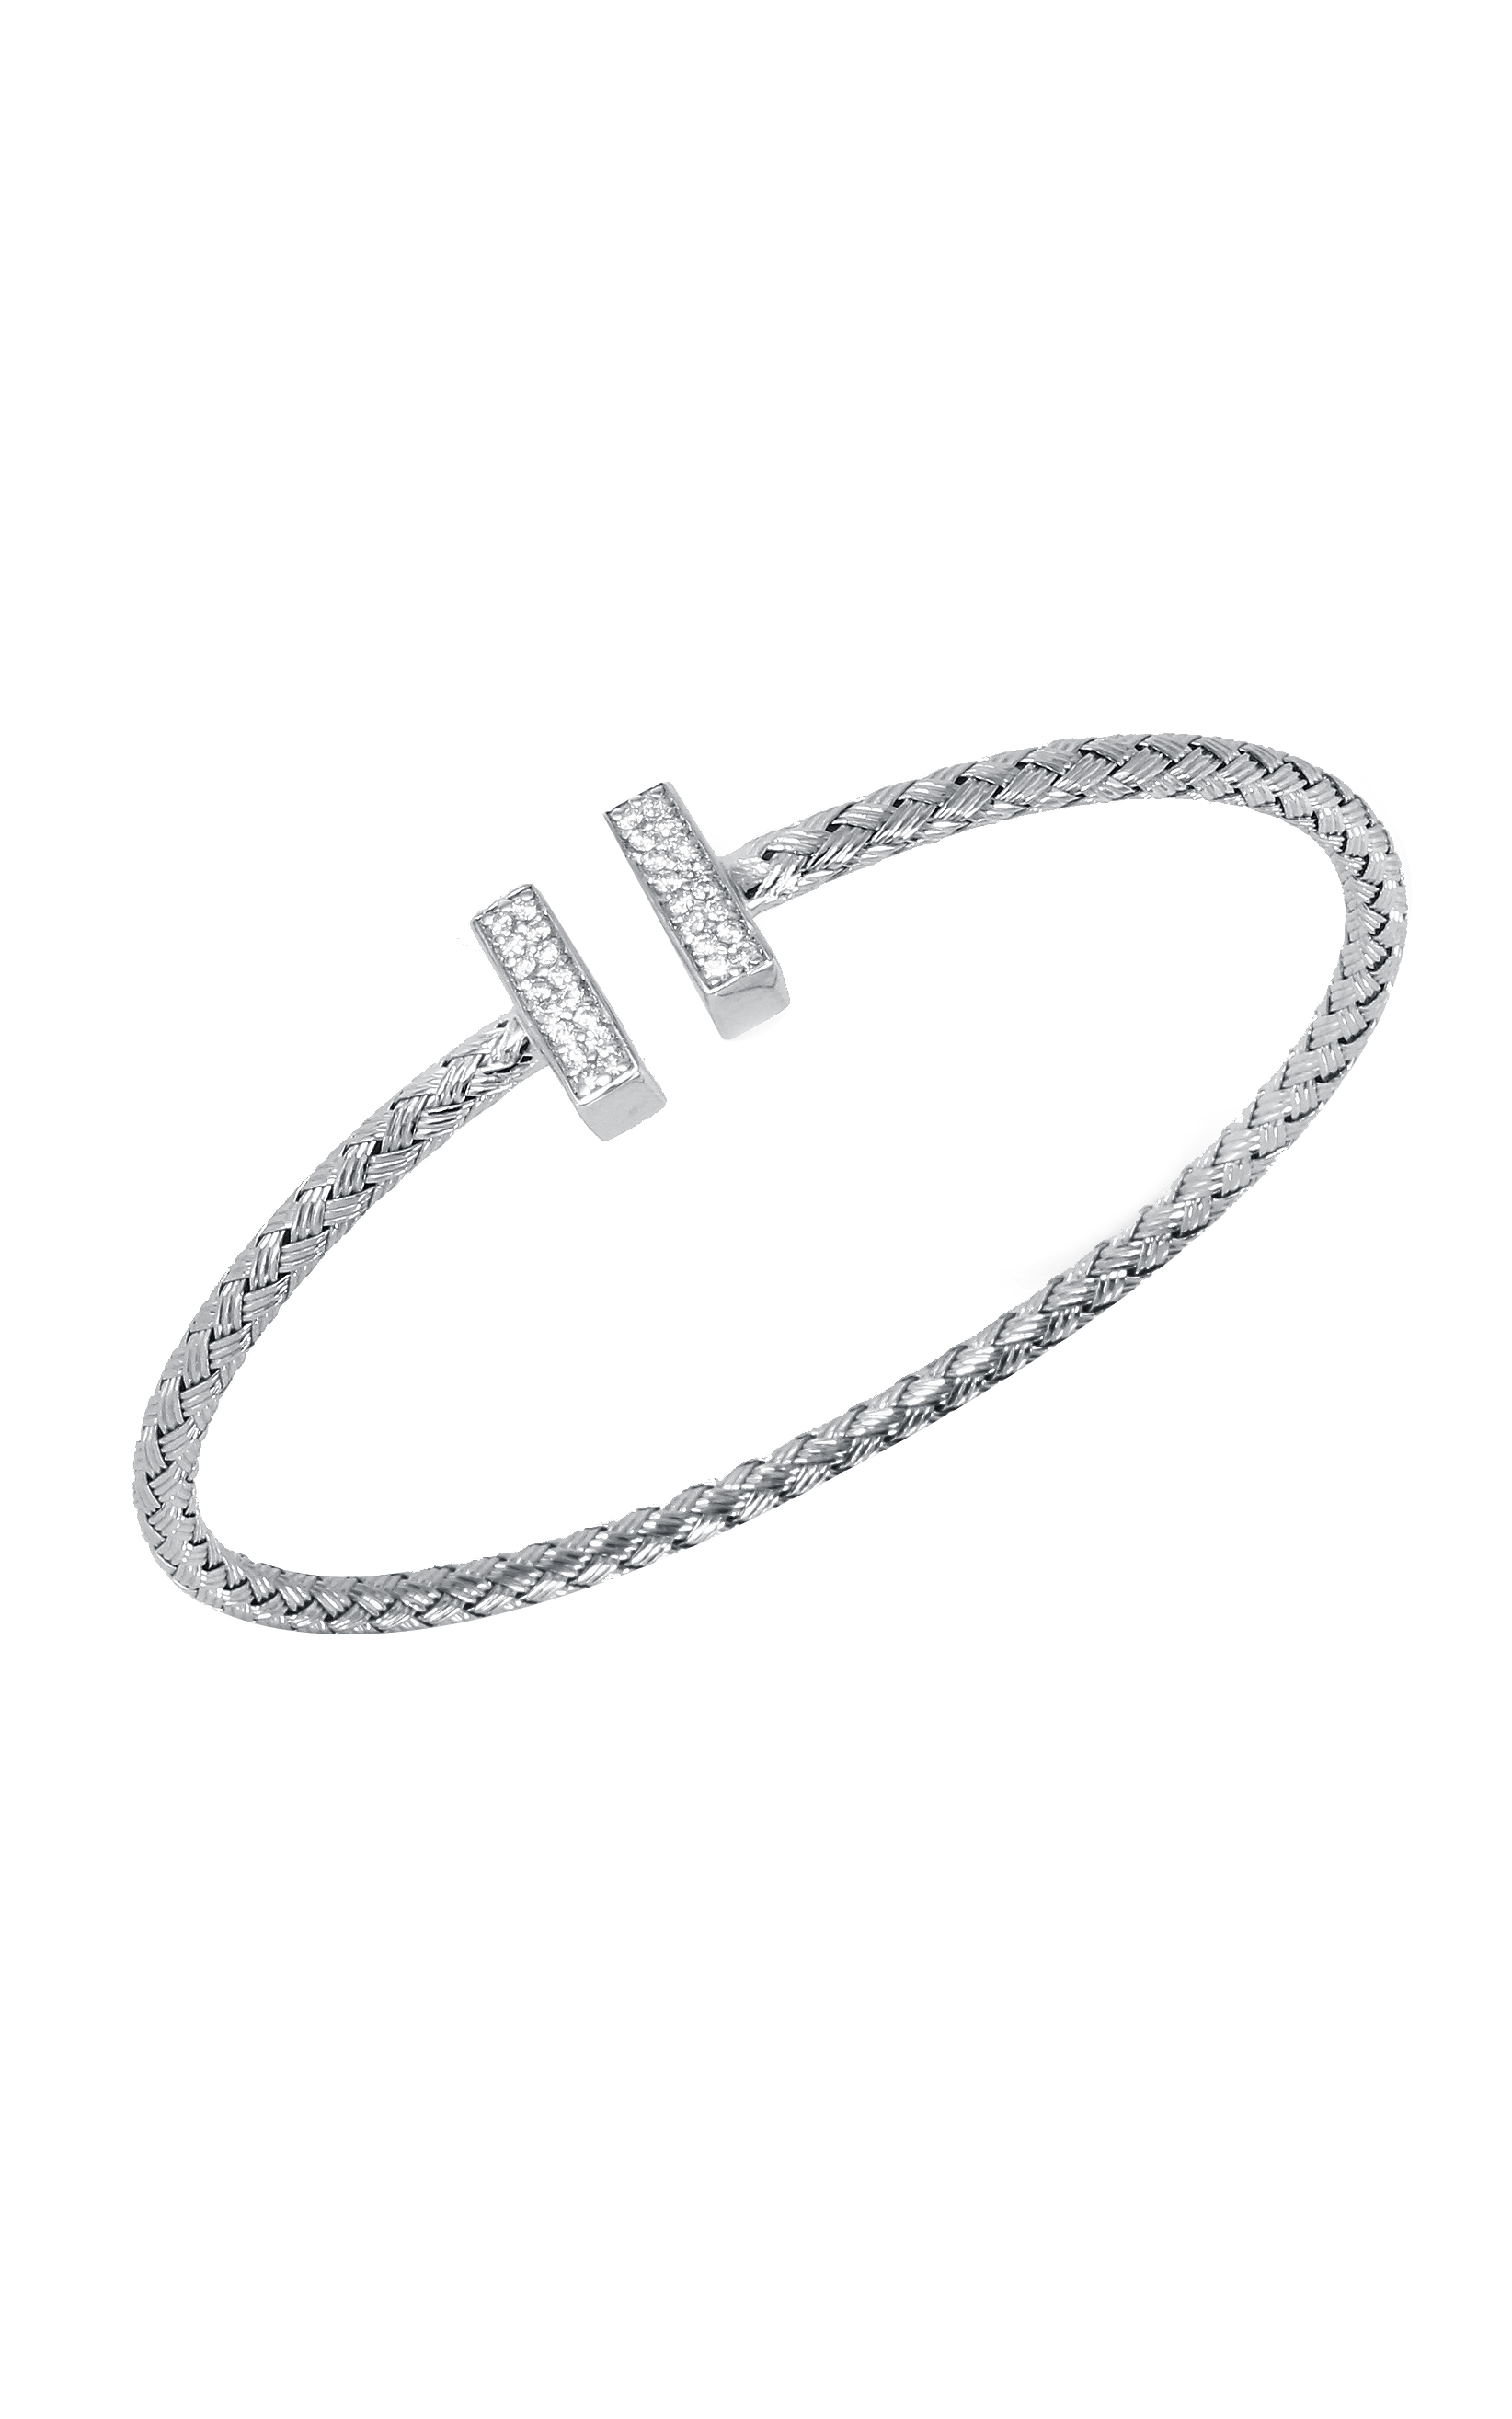 Charles Garnier Paolo Collection Bracelet MLC8182WZ product image